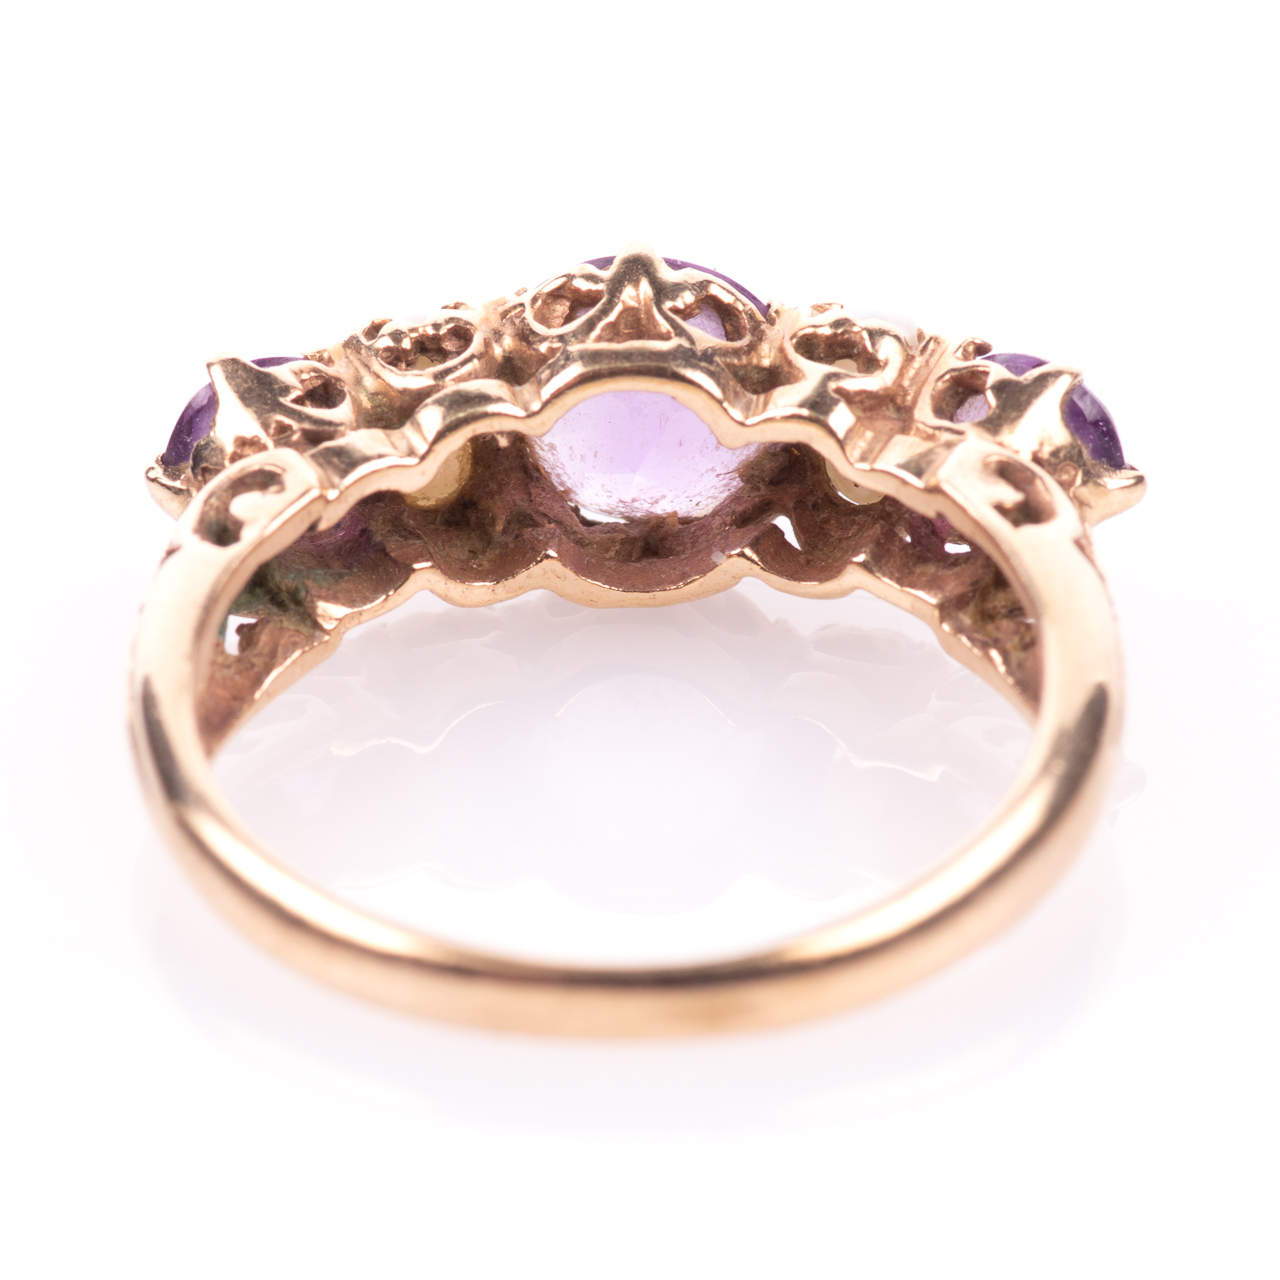 9ct Gold 2.10ct Amethyst & Pearl Ring - Image 6 of 7